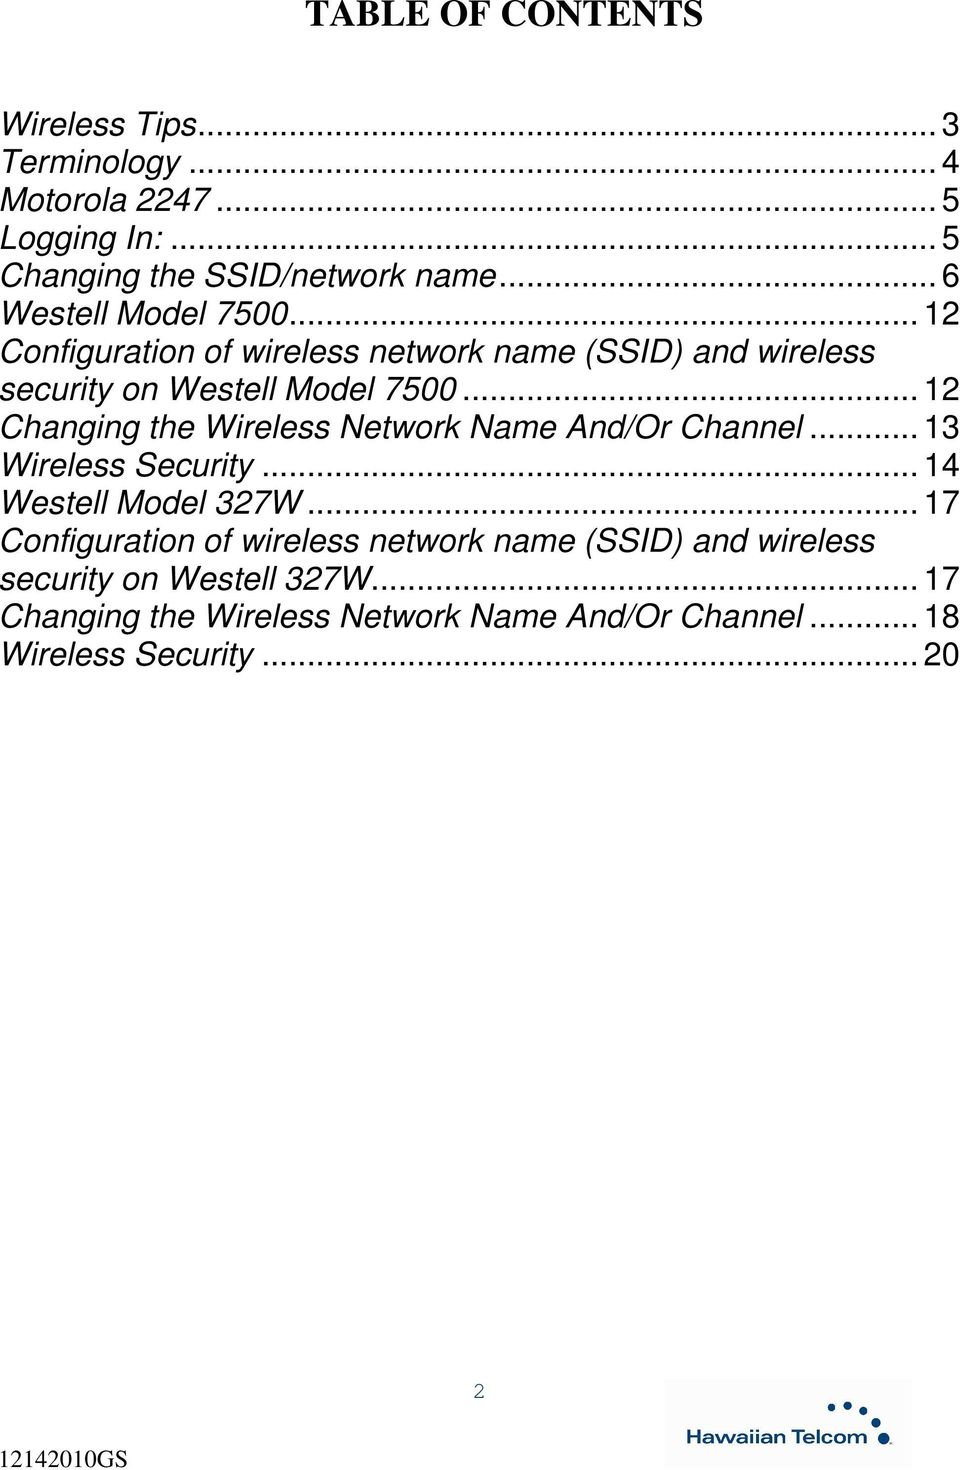 .. 12 Changing the Wireless Network Name And/Or Channel... 13 Wireless Security... 14 Westell Model 327W.